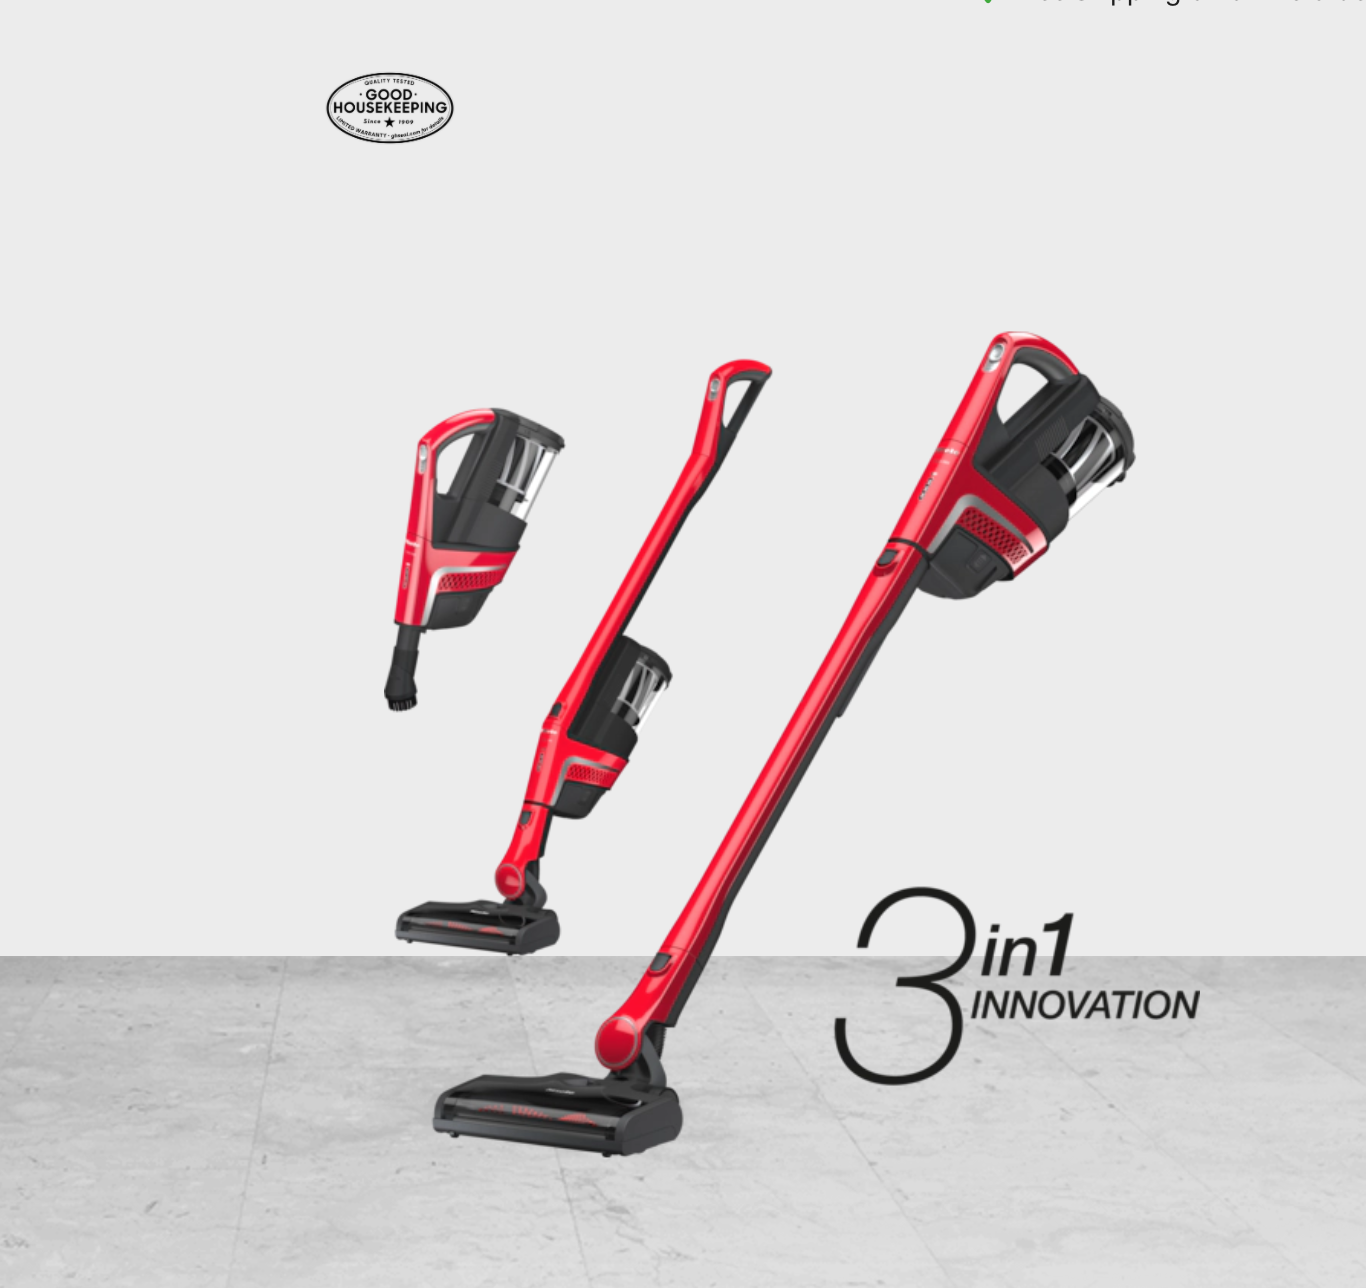 TriFlex by Miele 3 in one broom